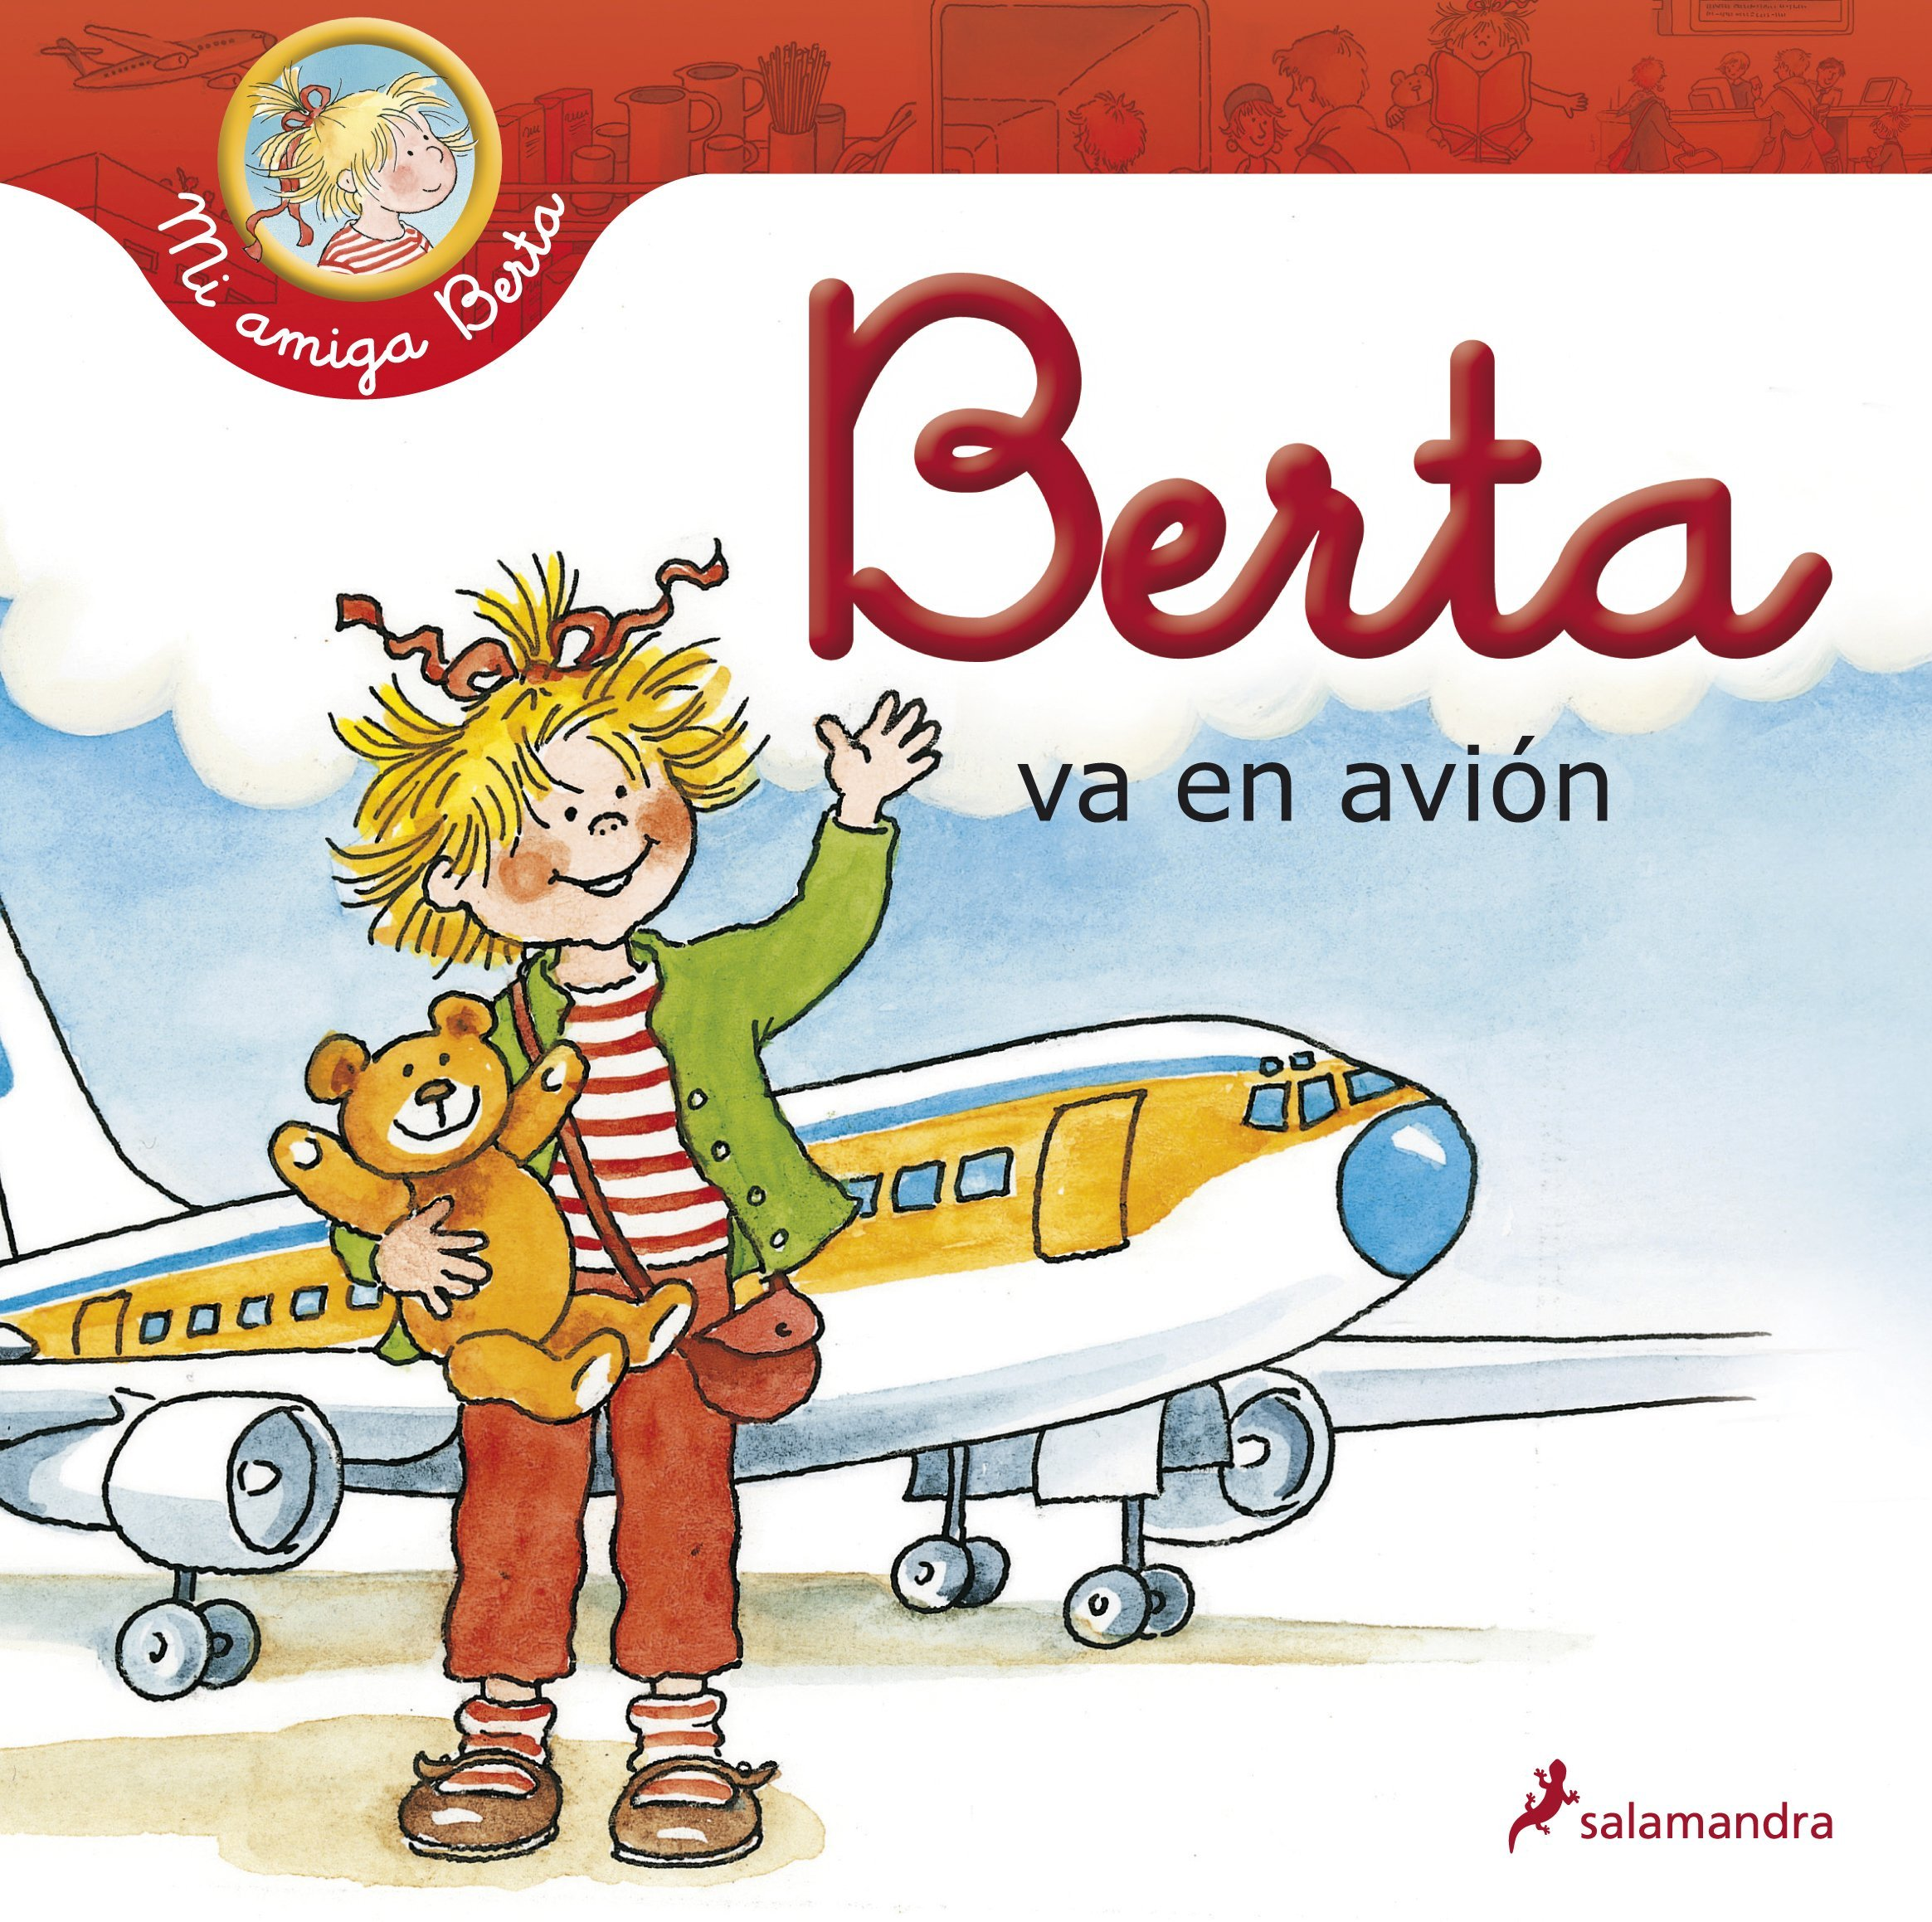 Berta va en avion (My Friend Berta) (Spanish Edition) (Spanish) Hardcover – September 18, 2015